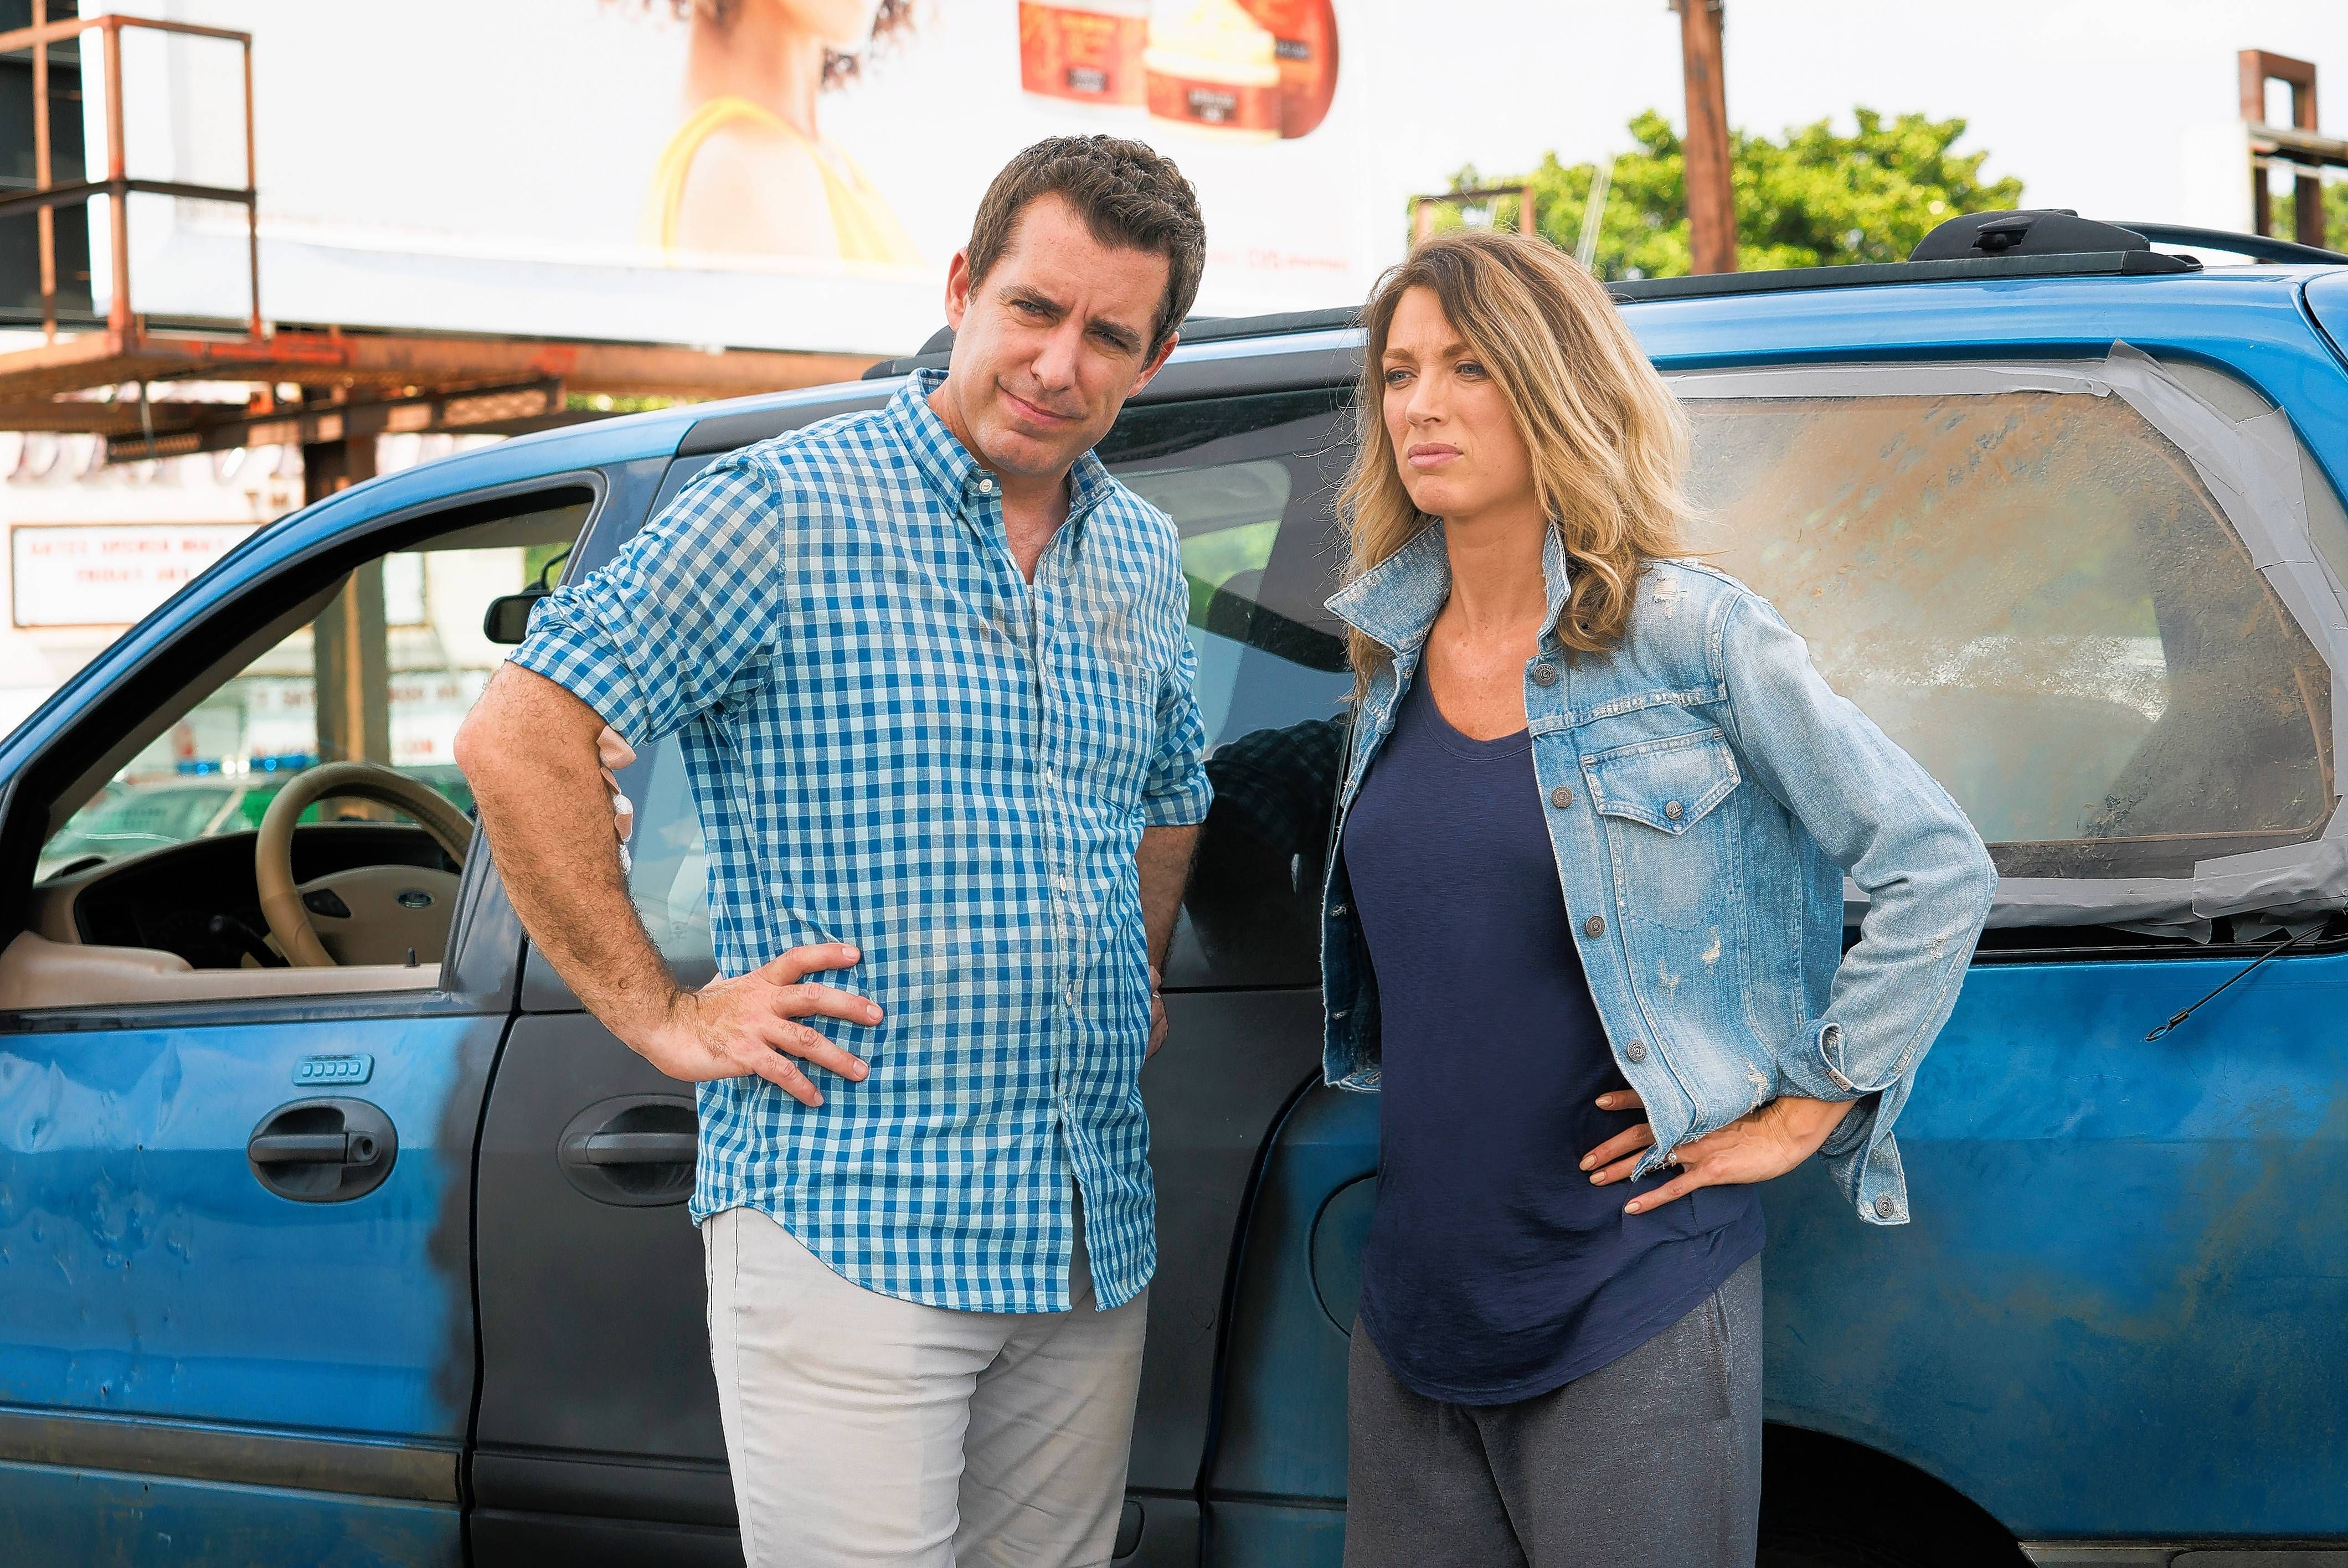 5278d954940 Nate and Robin Parker (Jason Jones and Natalie Zea) encounter all sorts of  trouble on their family road trip in